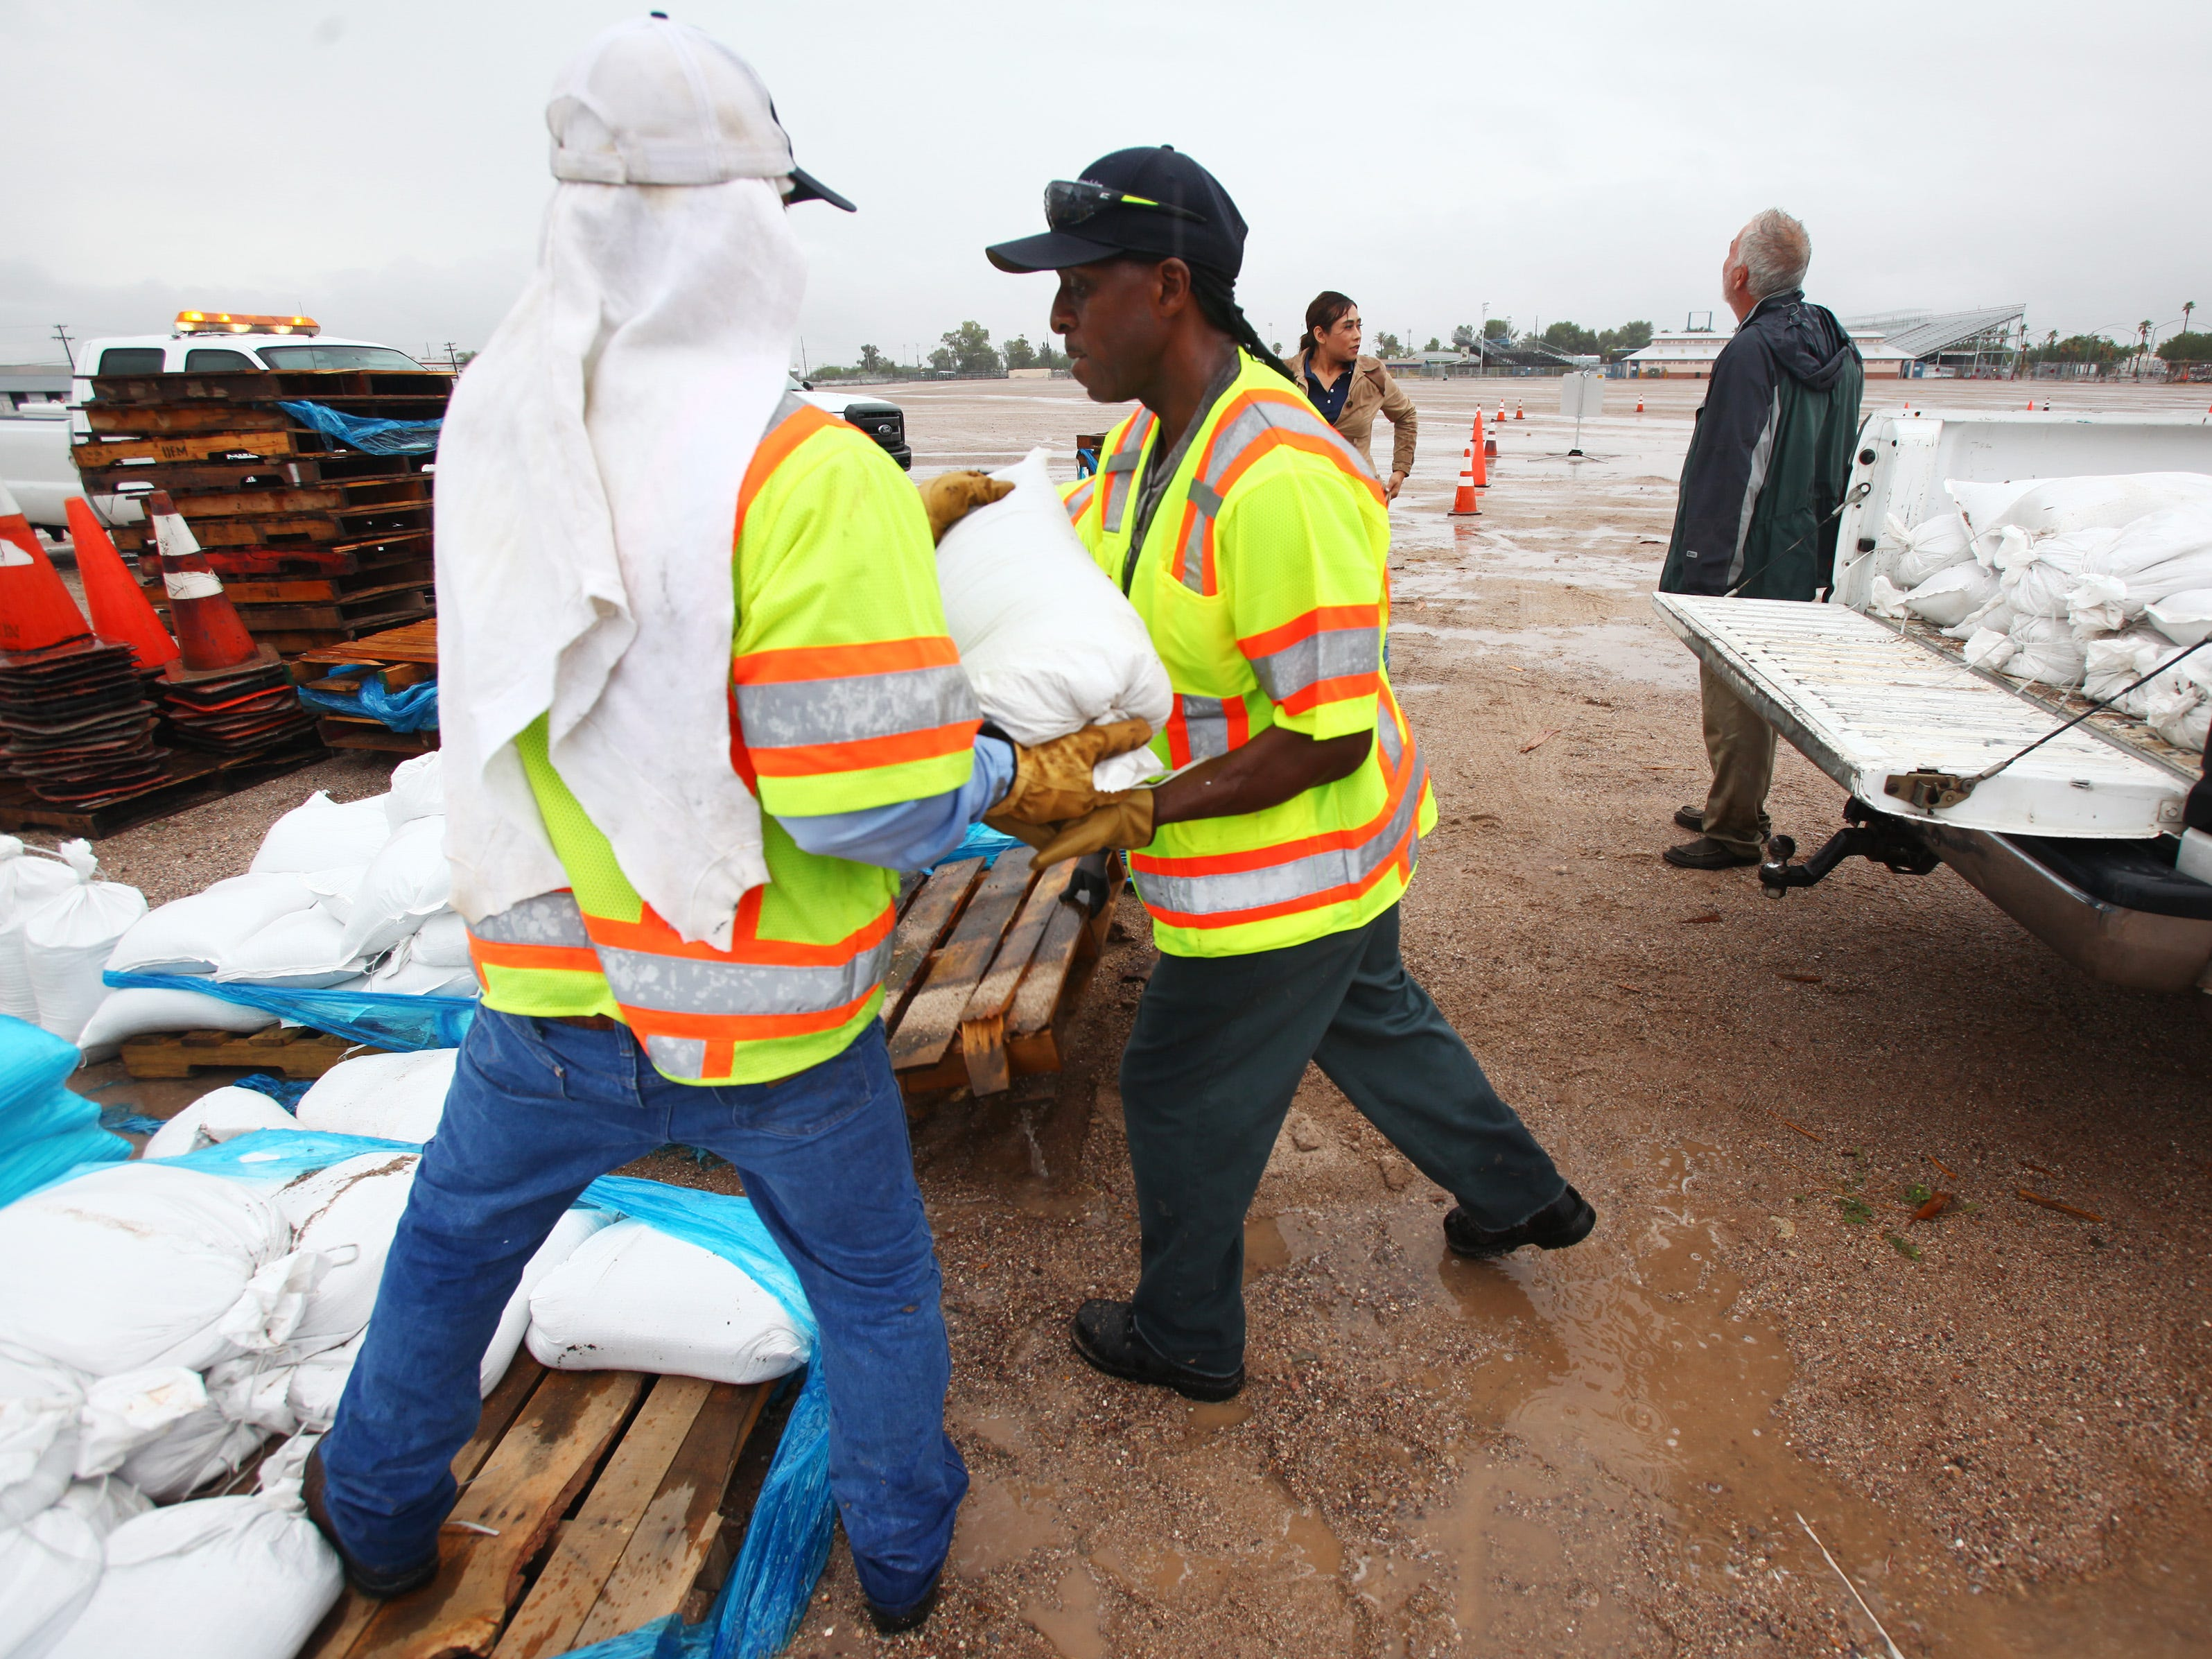 Workers from the Tucson Department of Transportation load sandbags for residents during rain from the remnants of Hurricane Rosa in Tucson on Oct. 1, 2018.